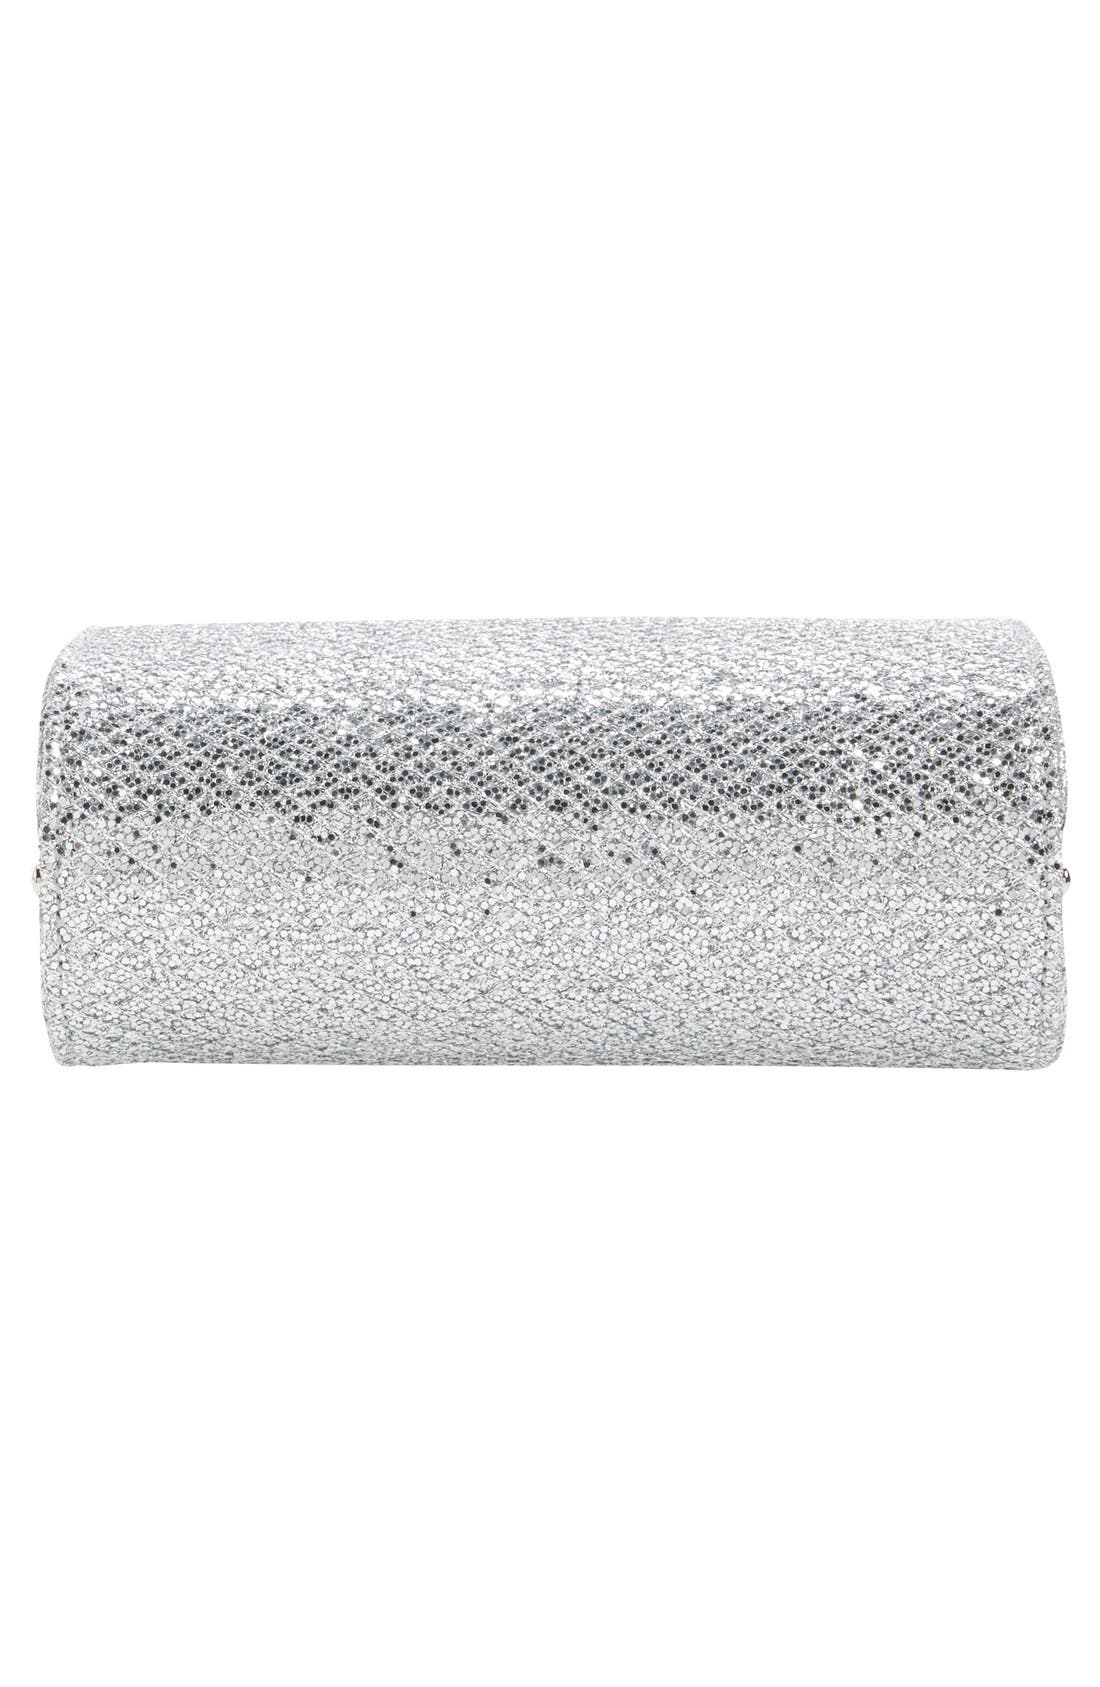 Alternate Image 6  - Jimmy Choo 'Cate' Glitter Box Clutch